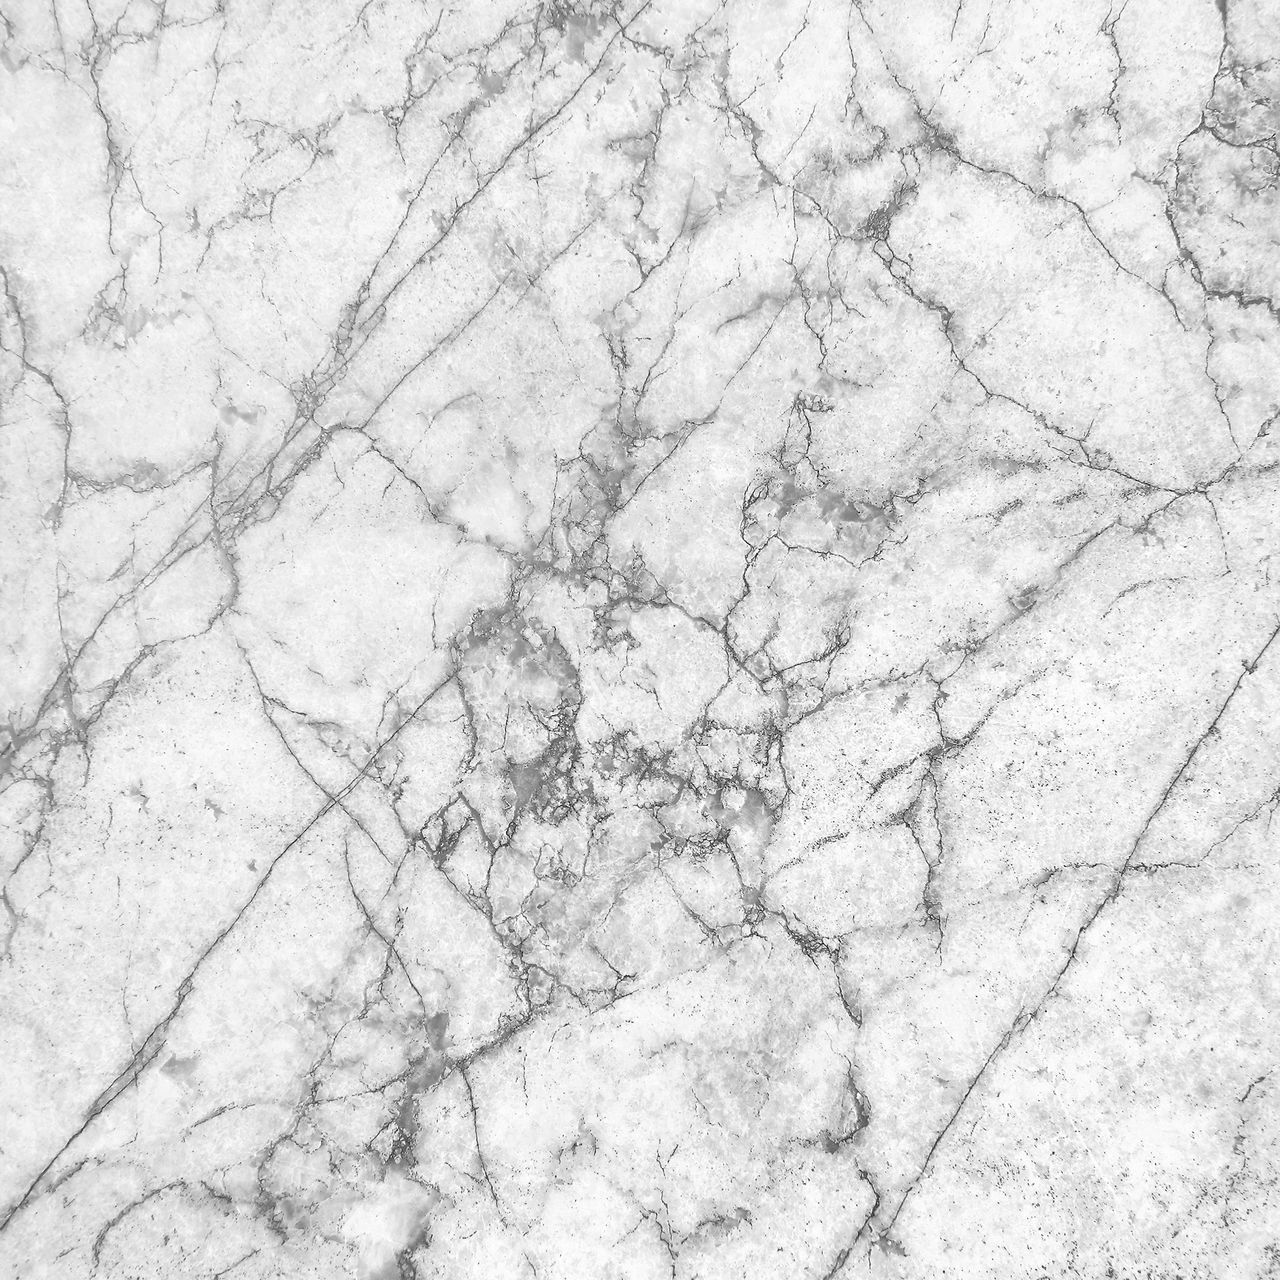 marble, textured, backgrounds, pattern, full frame, marbled effect, abstract, stone material, solid, no people, granite, rock - object, close-up, stone - object, rock, mottled, white color, nature, flooring, abstract backgrounds, textured effect, surface level, tiled floor